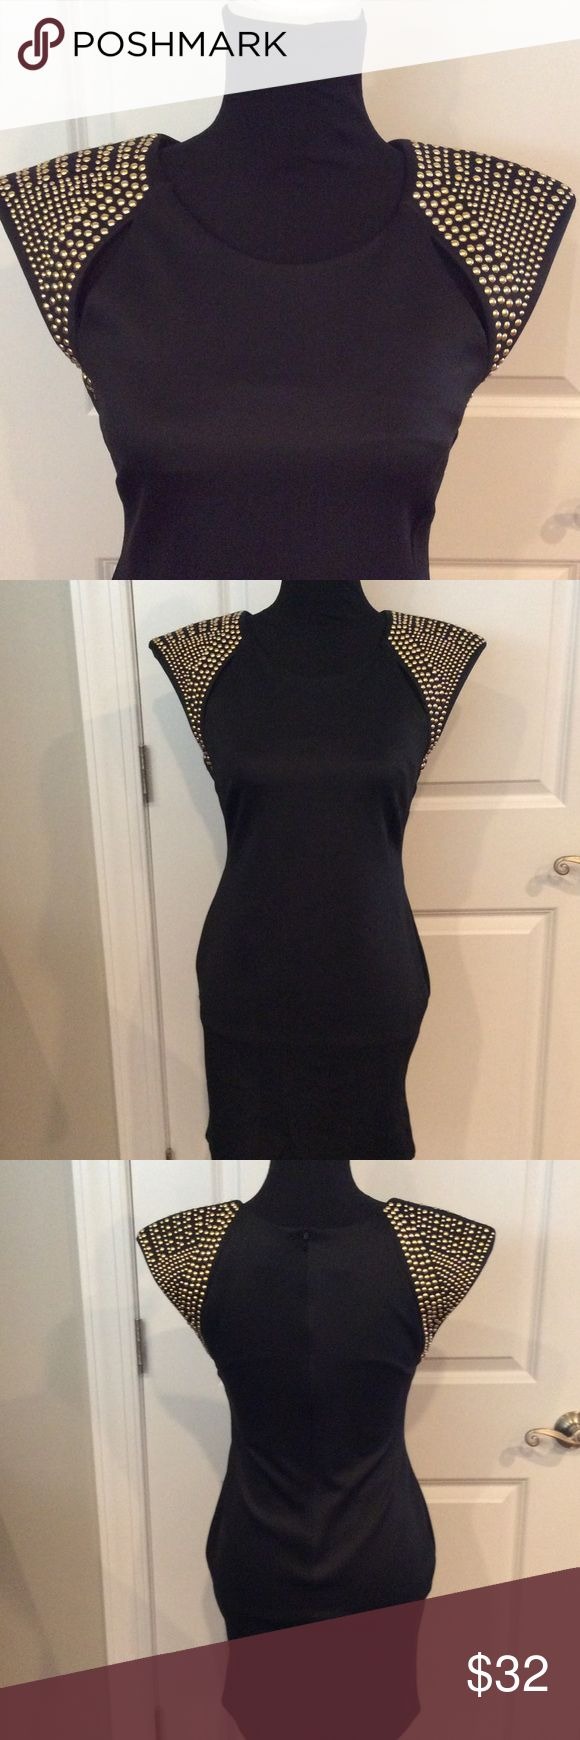 SAN SOUCI BLACK DRESS Another great find.  A beautiful black with gold accents. 95% polyester 5% spandex. Peek-a-boo accents in front of dress near shoulder bone. Zip back. Dress length 30 inches.  A GREAT DRESS AT A GREAT PRICE San Souci Dresses Midi